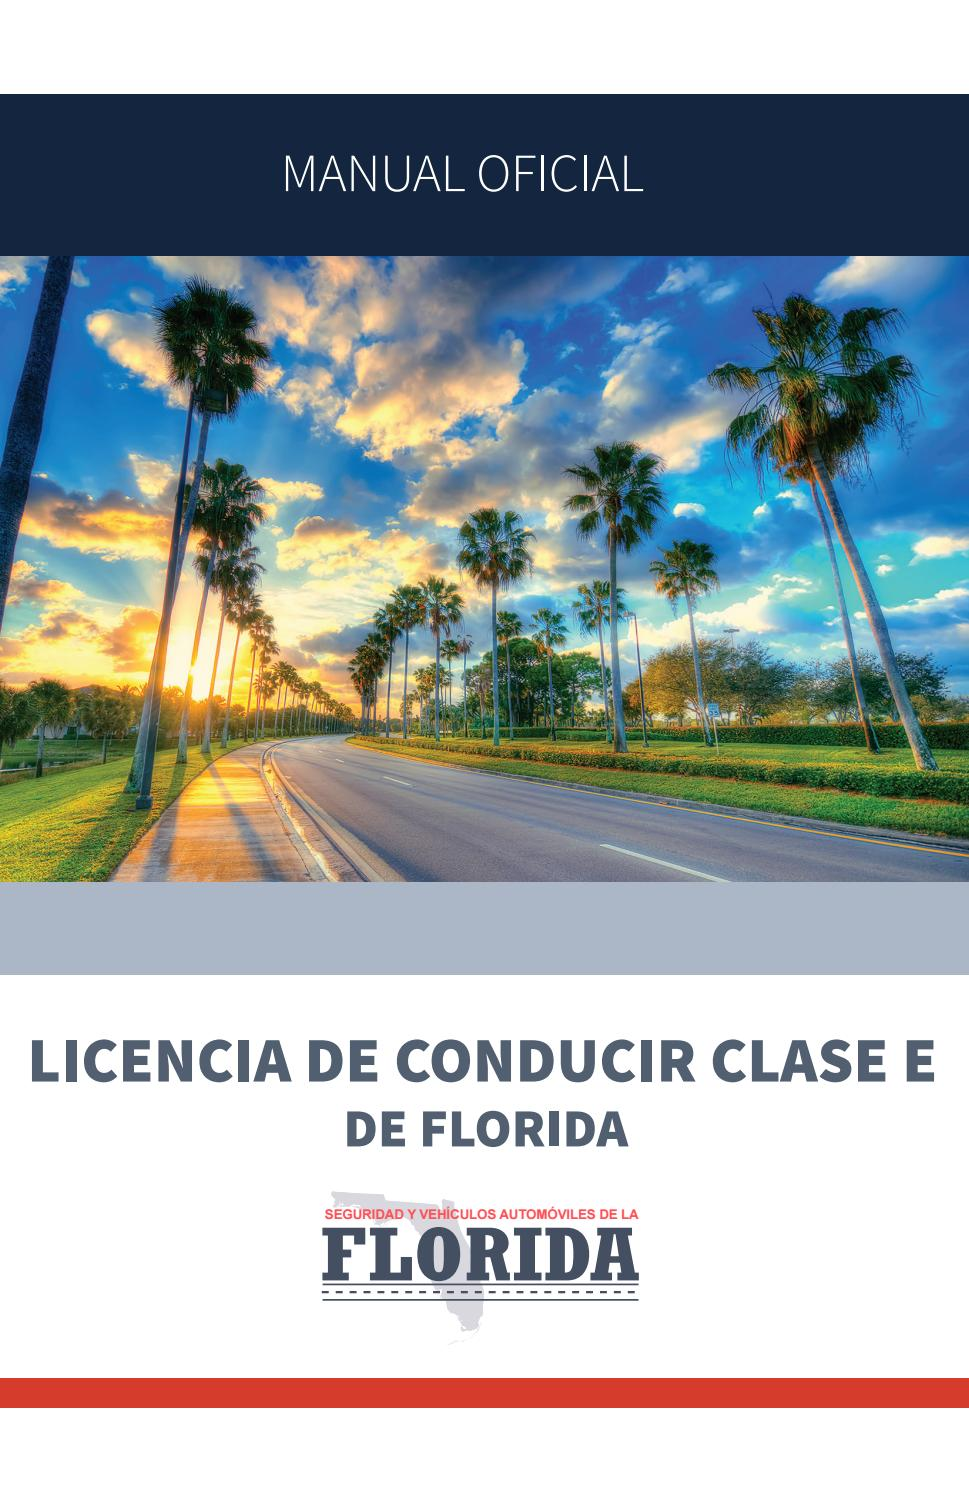 Manual licencia de conducir florida by Kara Melo - issuu